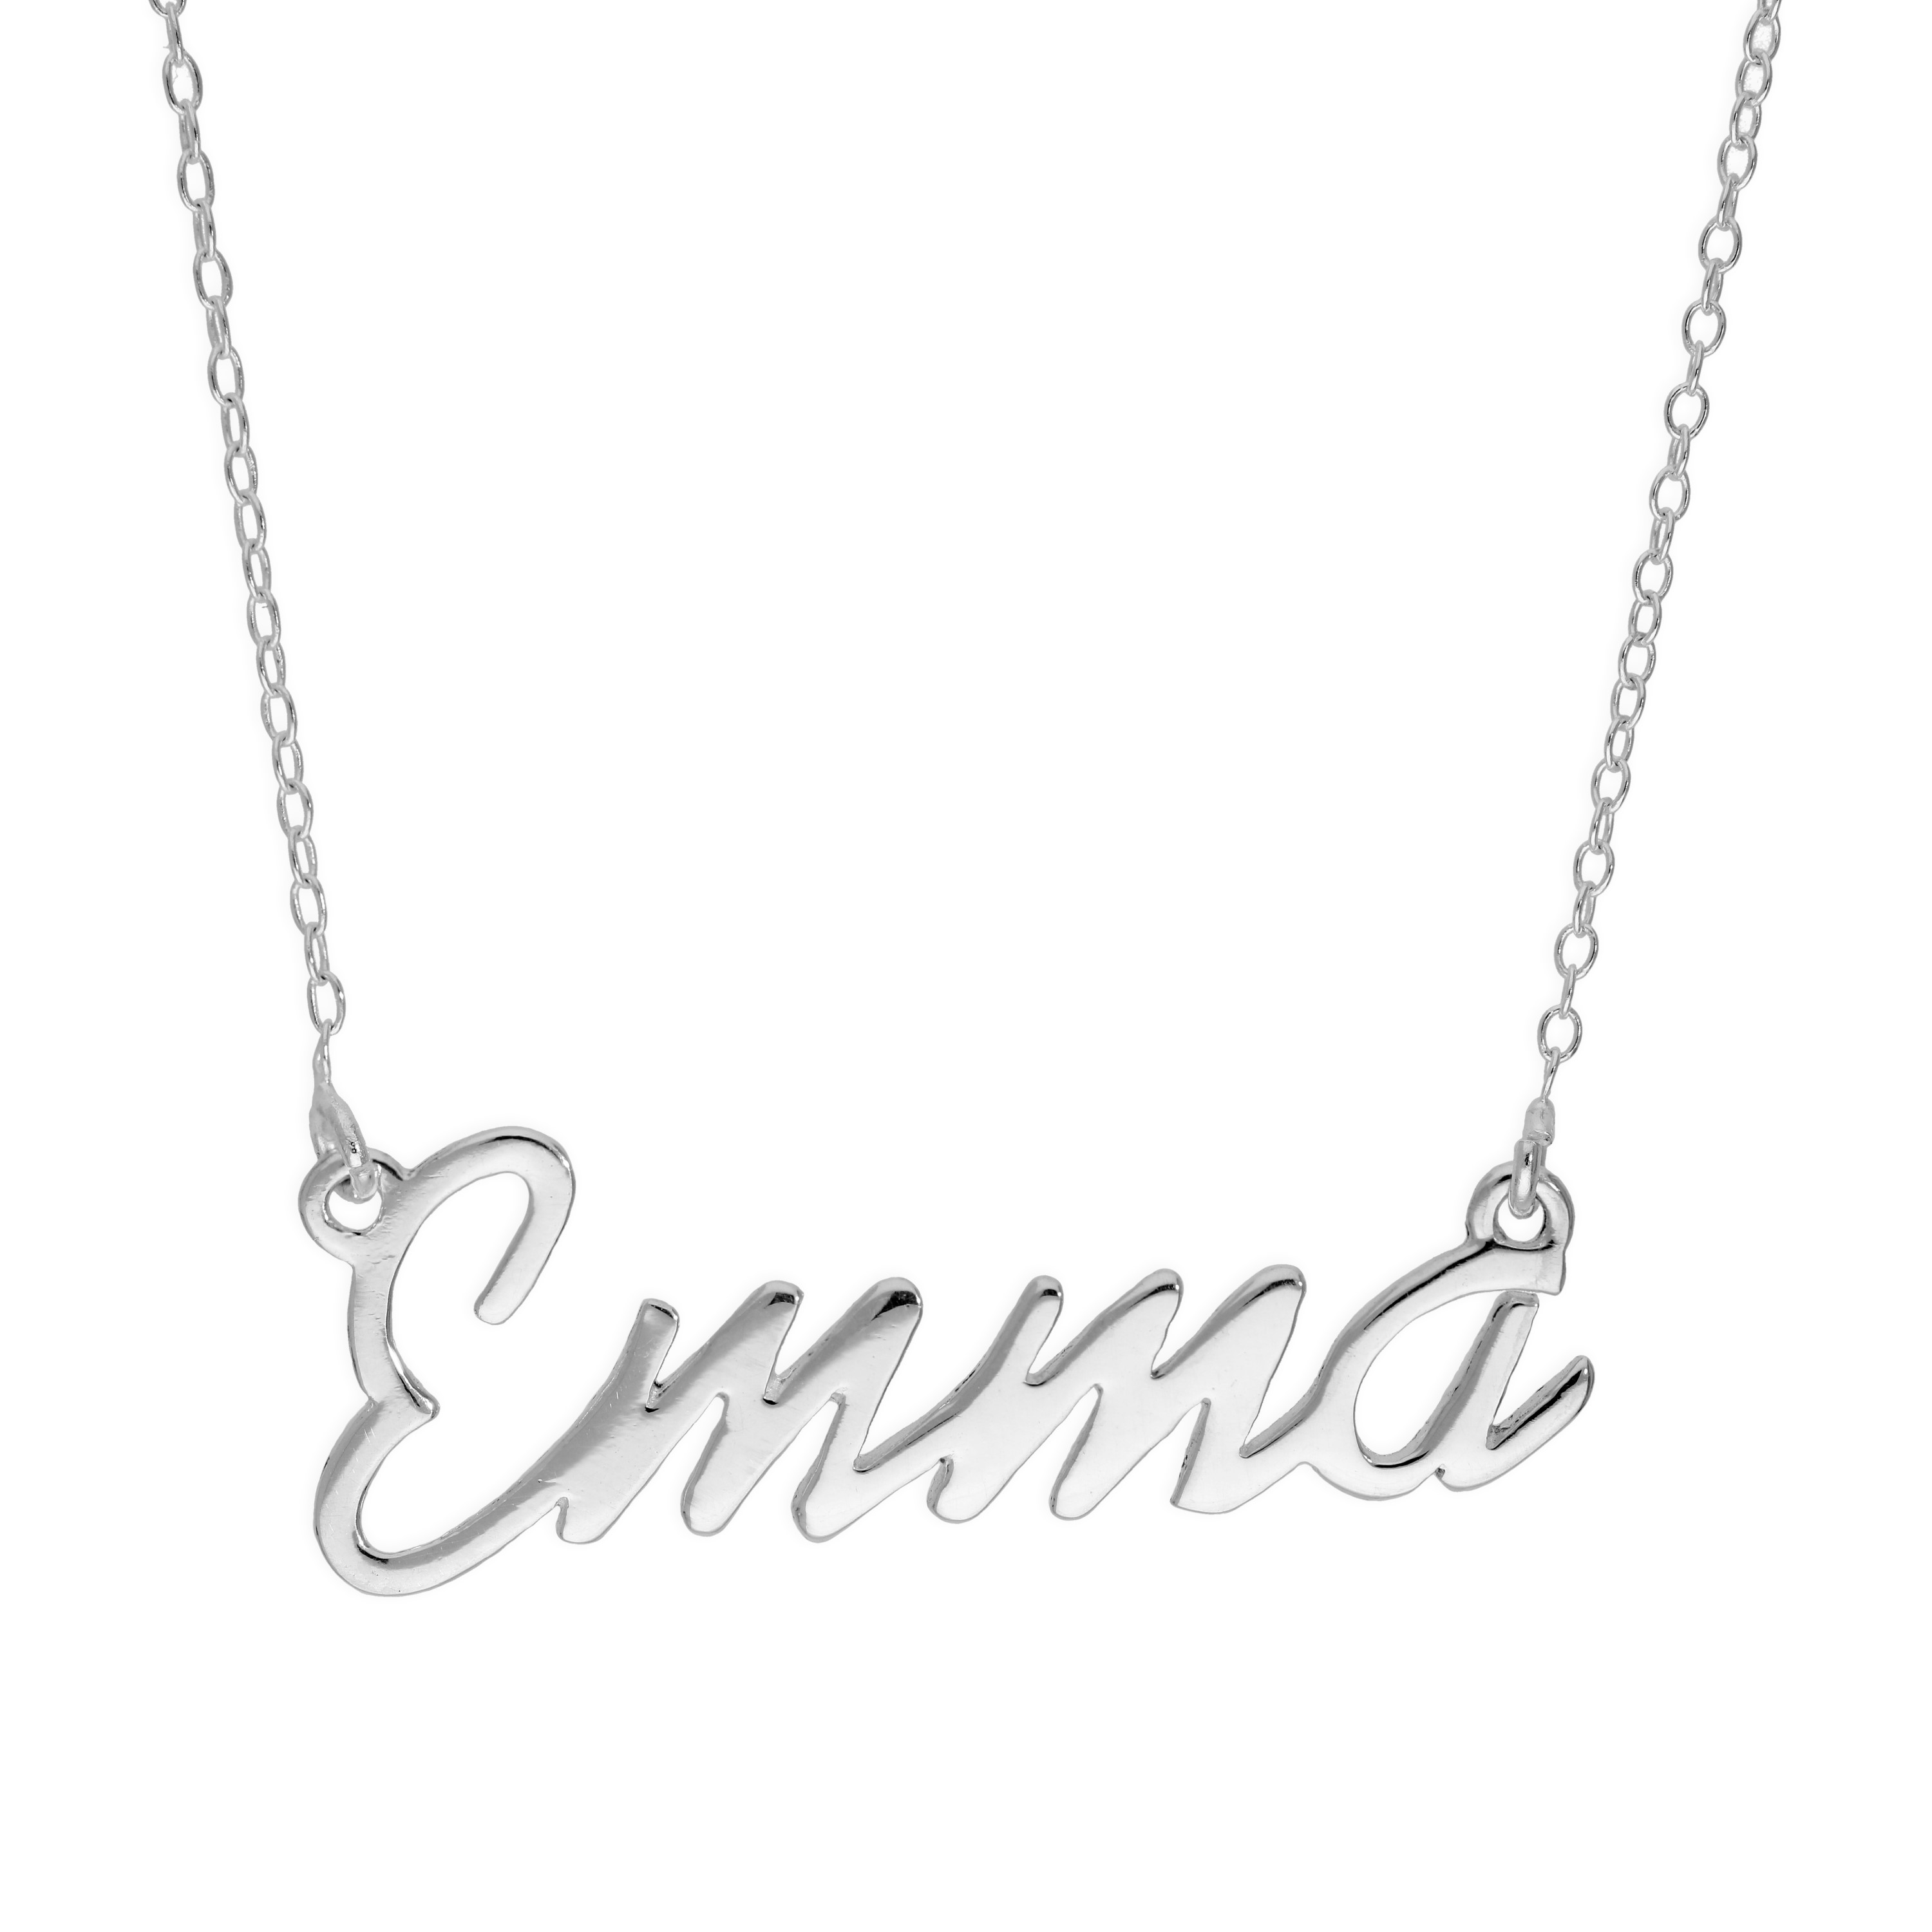 name product shopohmygod jewellery necklace namenecklace com